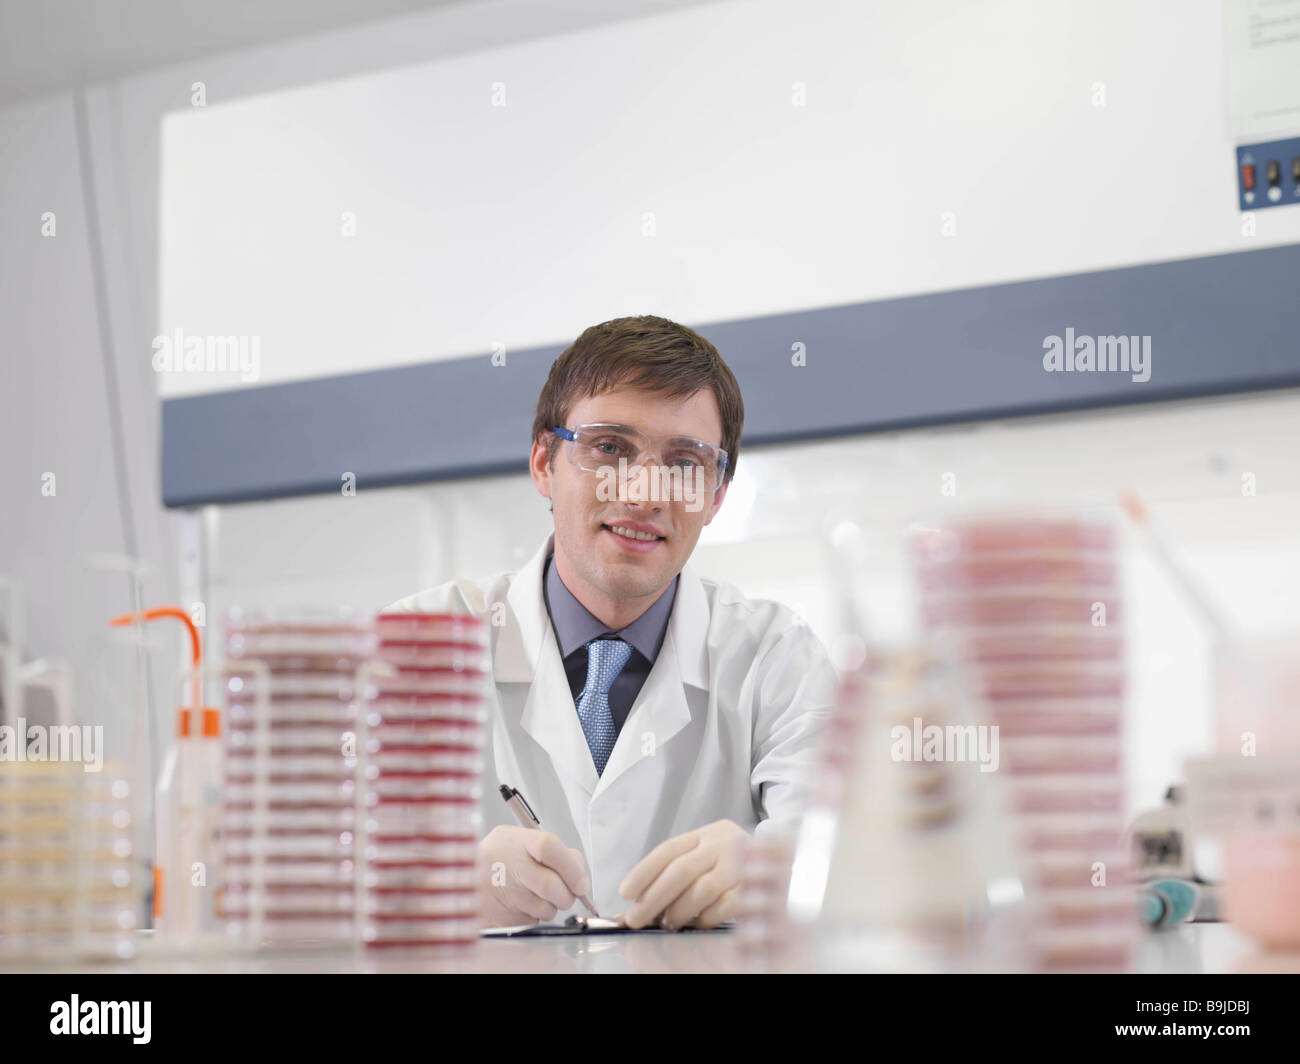 Laboratory technician at work - Stock Image